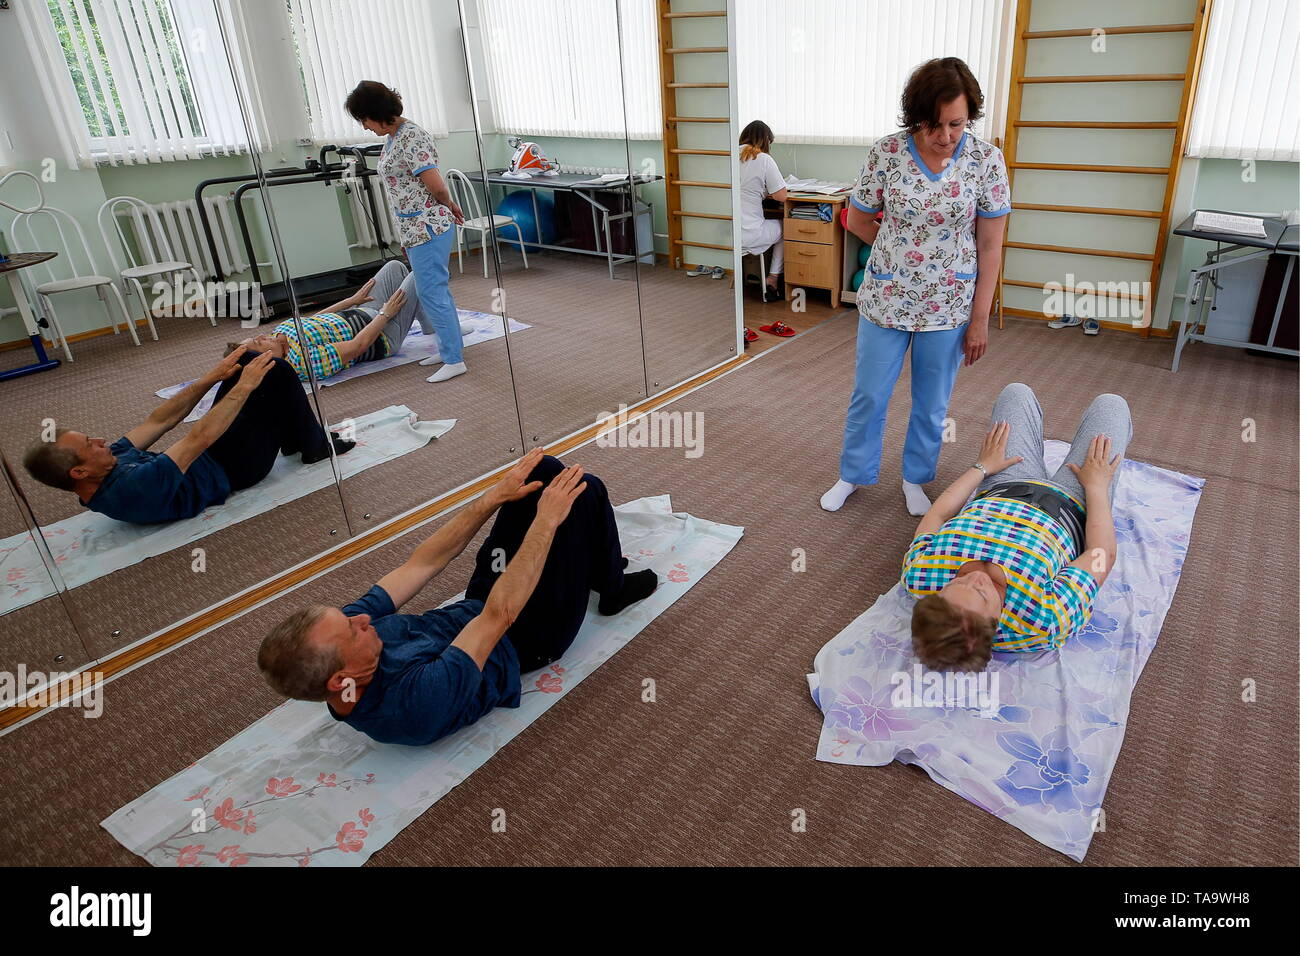 Rostov On Don, Russia. 23rd May, 2019. ROSTOV-ON-DON, RUSSIA - MAY 23, 2019: Elderly people during a therapeutic exercise session at a geriatric centre, part of a regional hospital for war veterans. Valery Matytsin/TASS Credit: ITAR-TASS News Agency/Alamy Live News - Stock Image